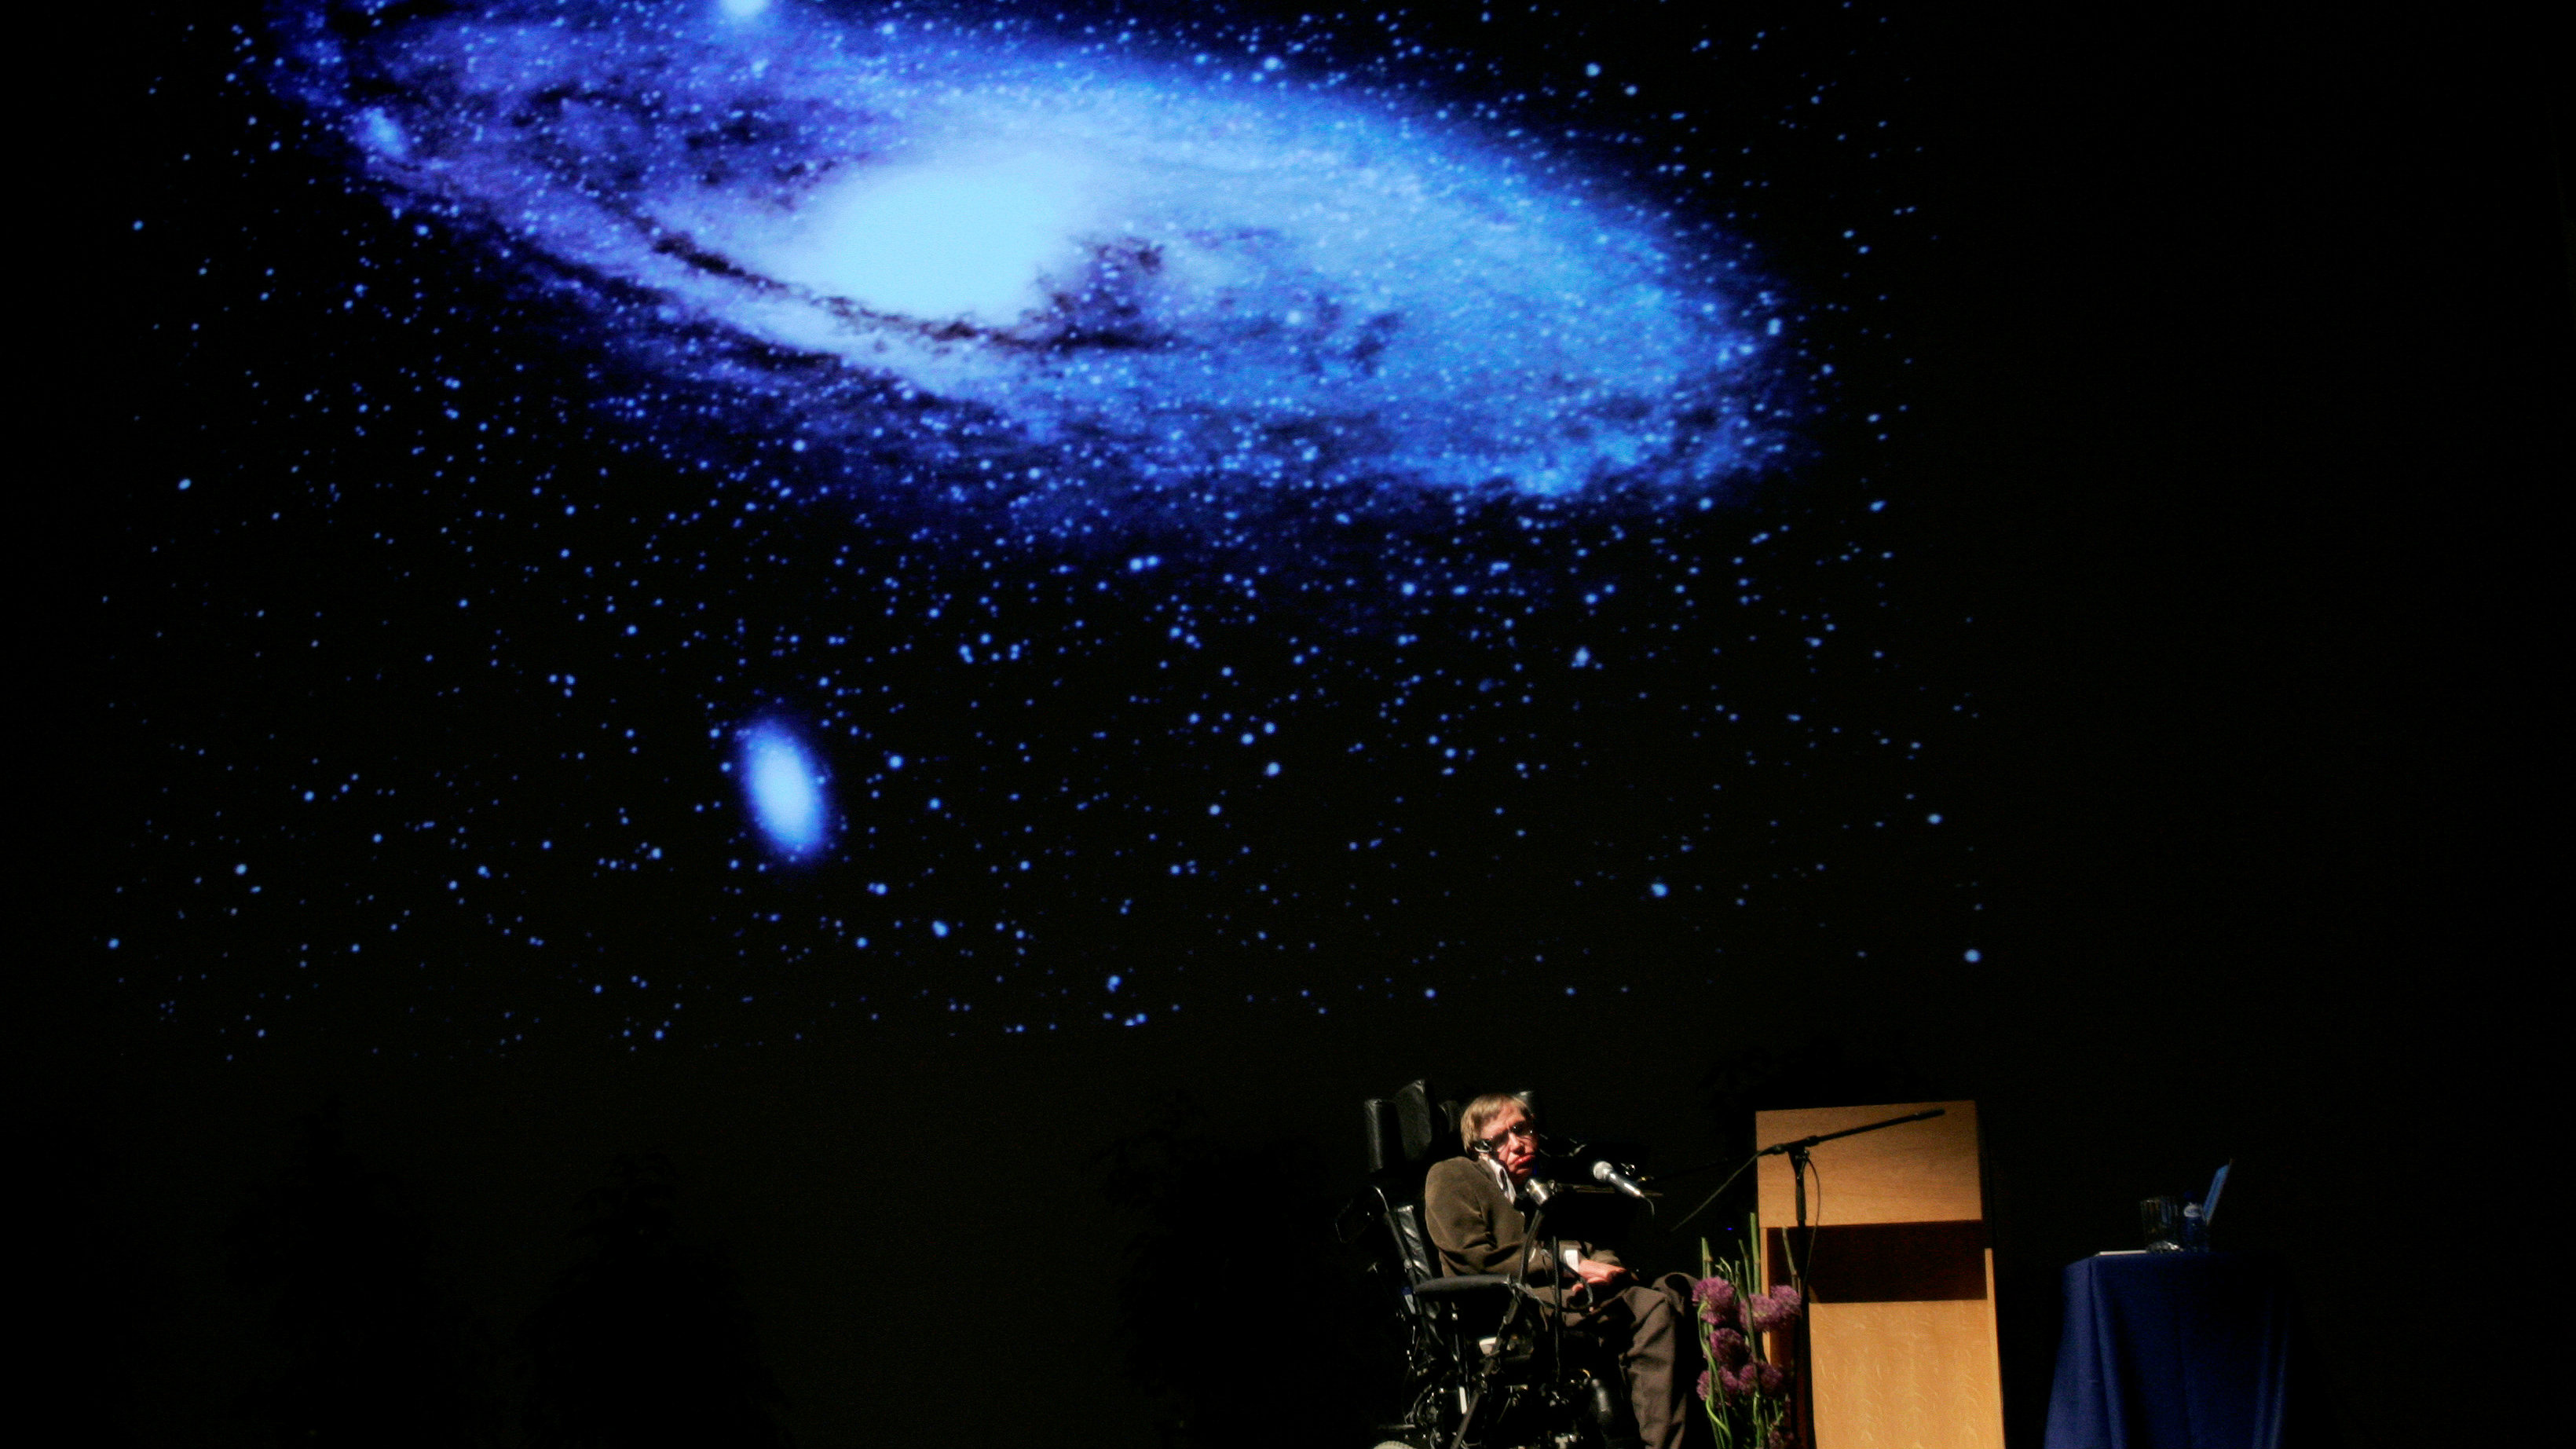 Stephen Hawking, one of the world's greatest minds, was an inspiration for atheists